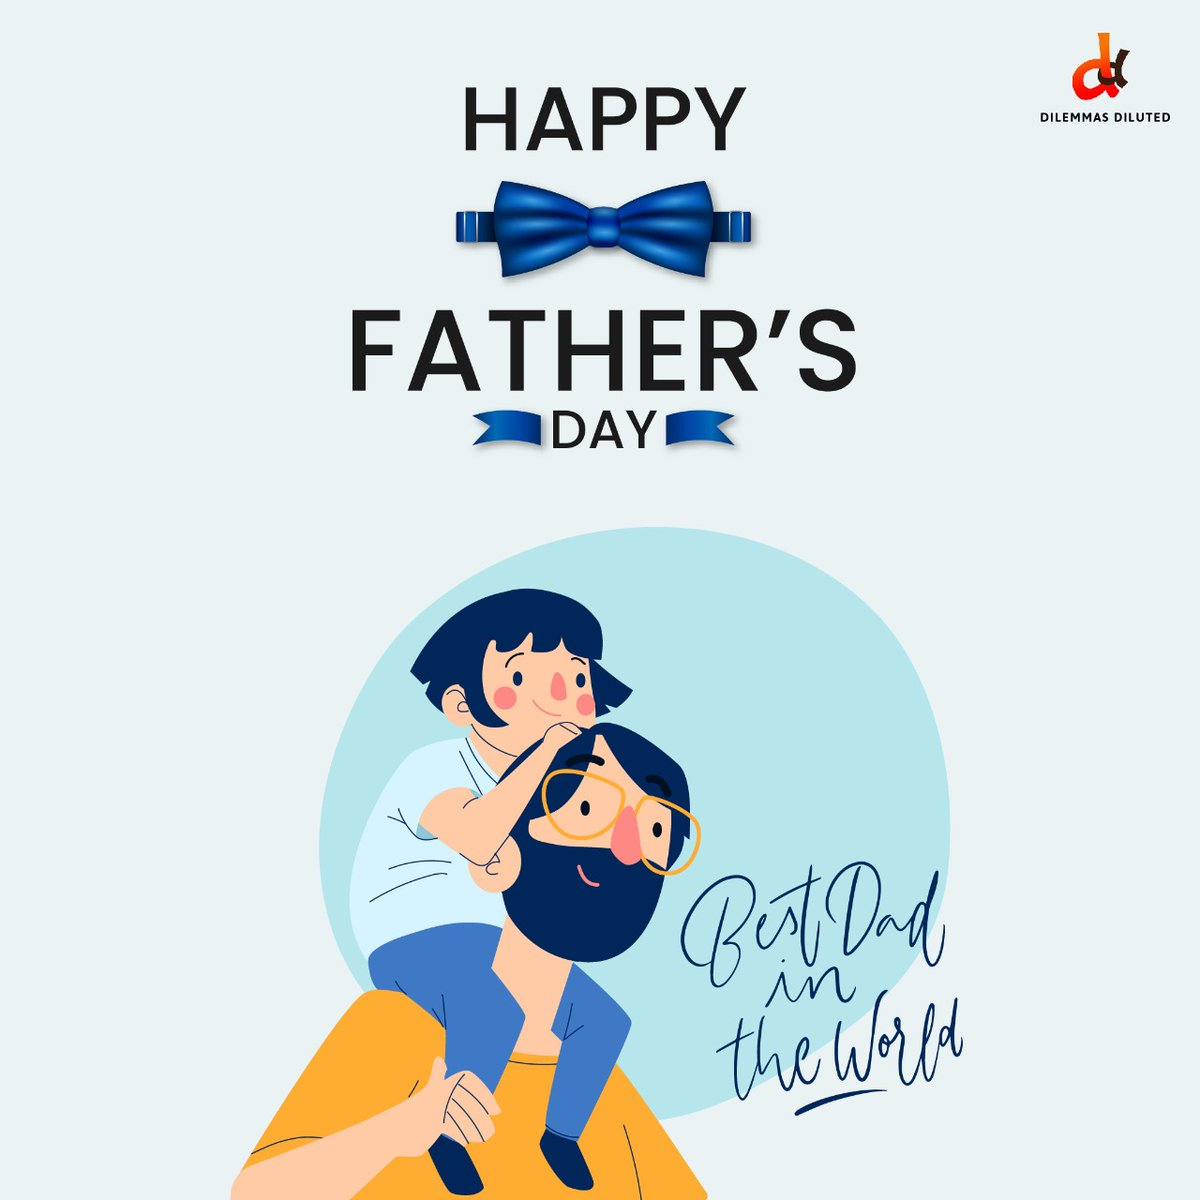 This #fathersday lets cherish our beautiful memories with our father. A #superhero who always supports and gives us the willpower whenever in need. . #HappyFathersDay to all the superheroes  from team #DilemmasDiluted .  #fathersday2020 #ilovemydad #fathersmatter #dilemmasdiluted https://t.co/juq71iDr8b